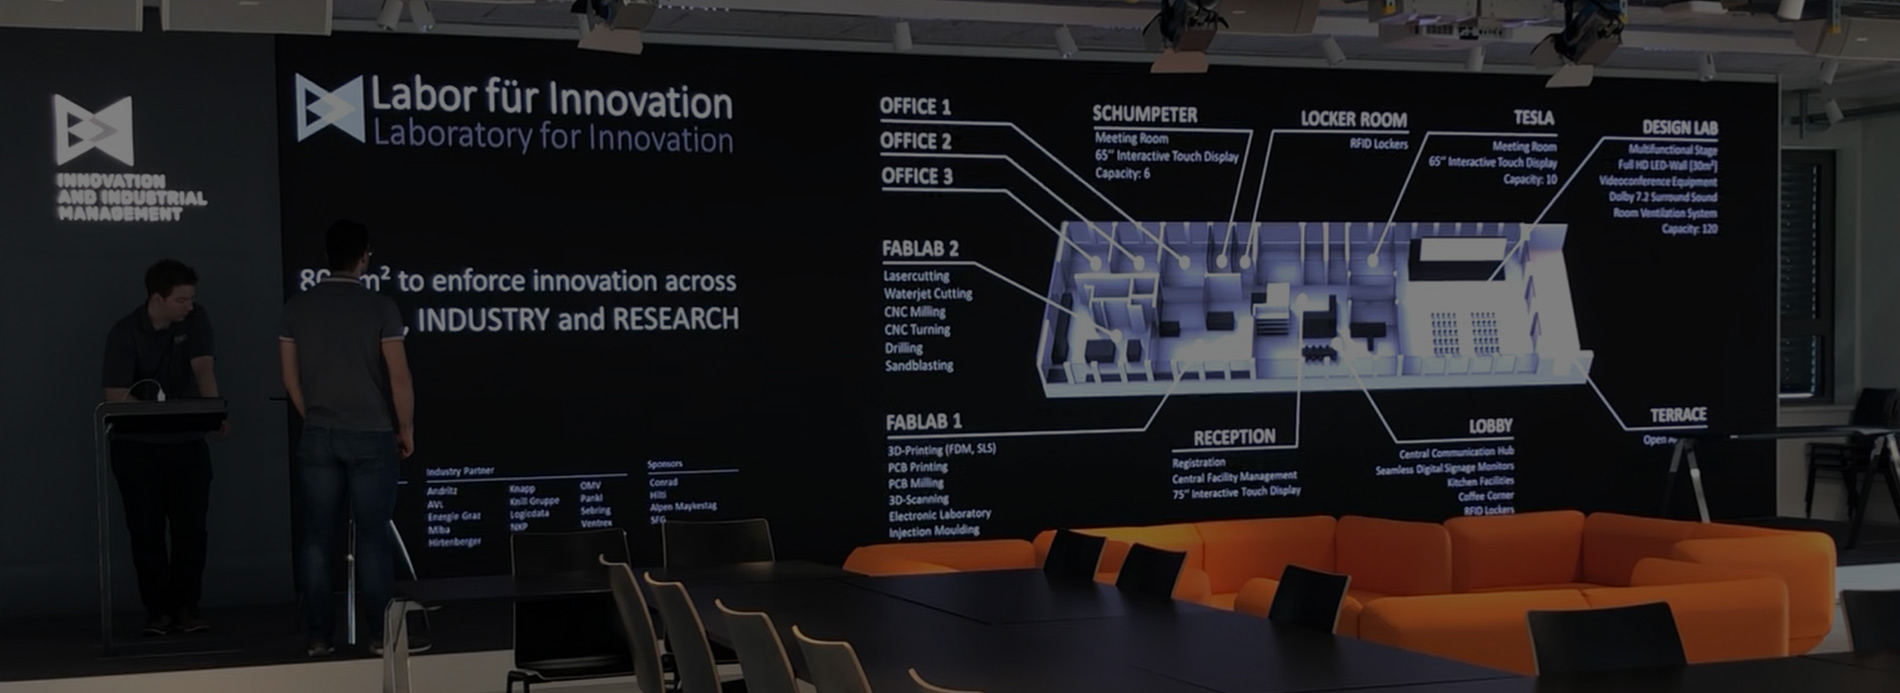 Konferenzraum LED-Display der Universität Graz